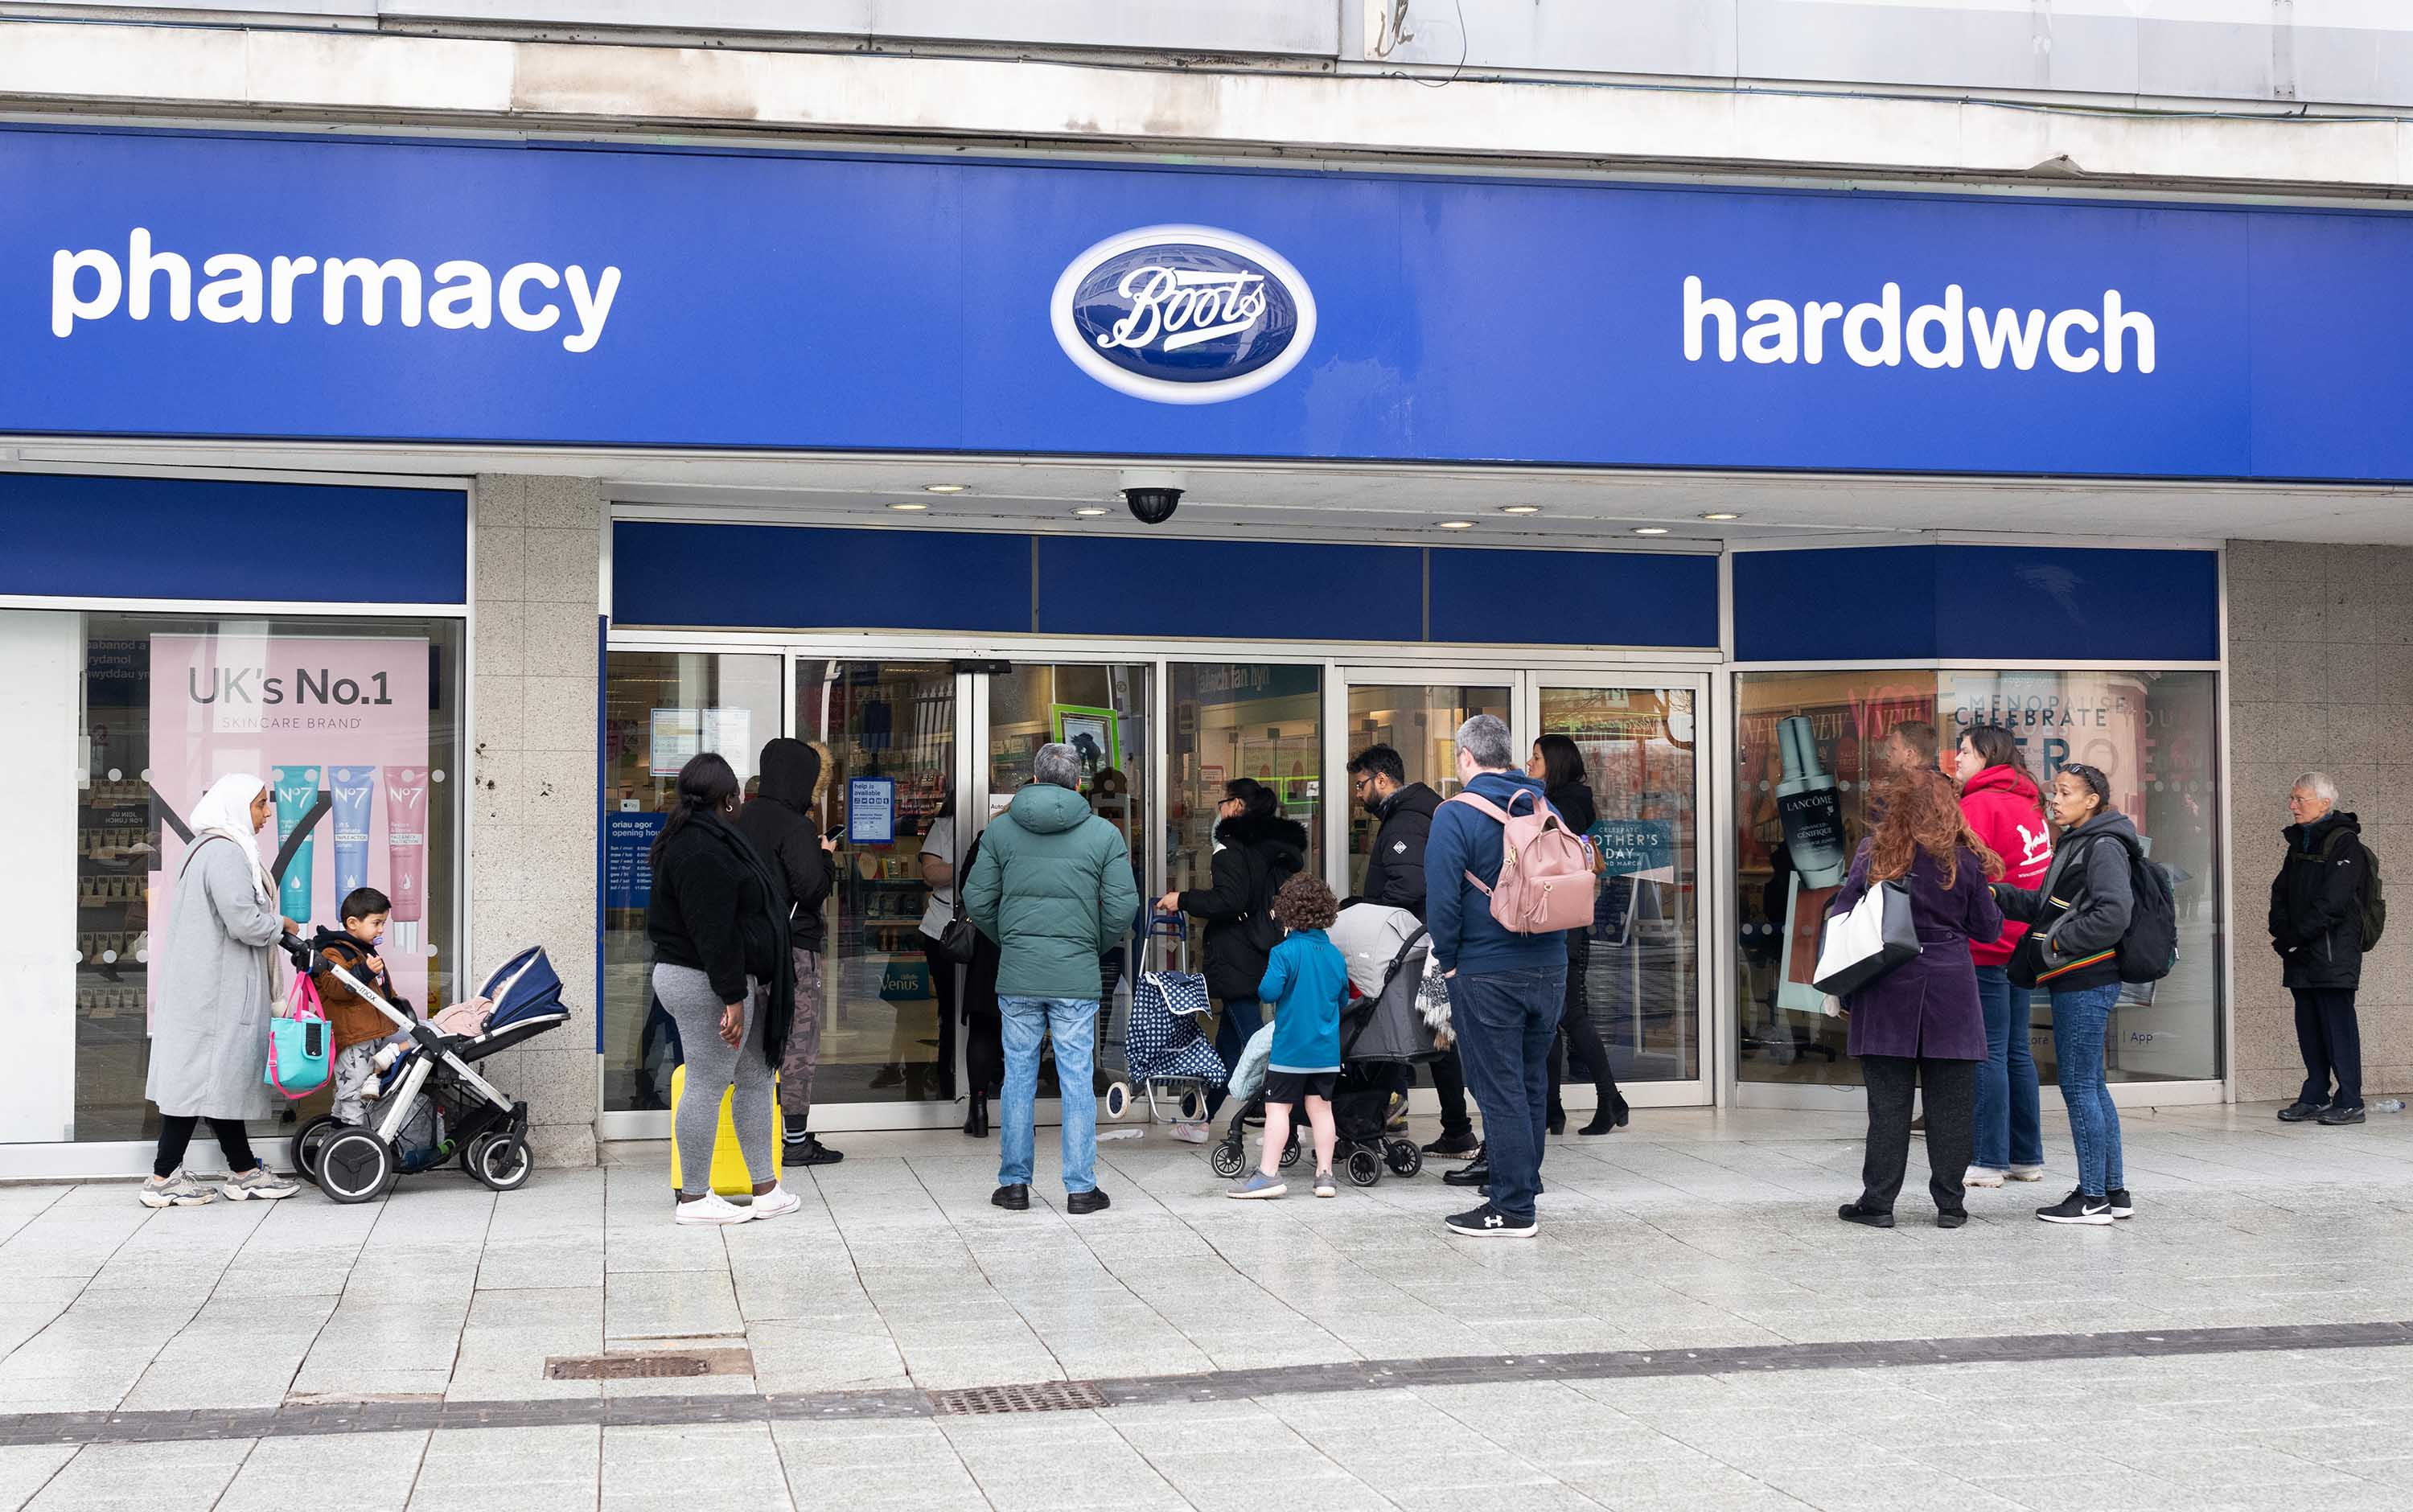 Shoppers wait for a Boots pharmacy store to open on March 8, in Cardiff, Wales.